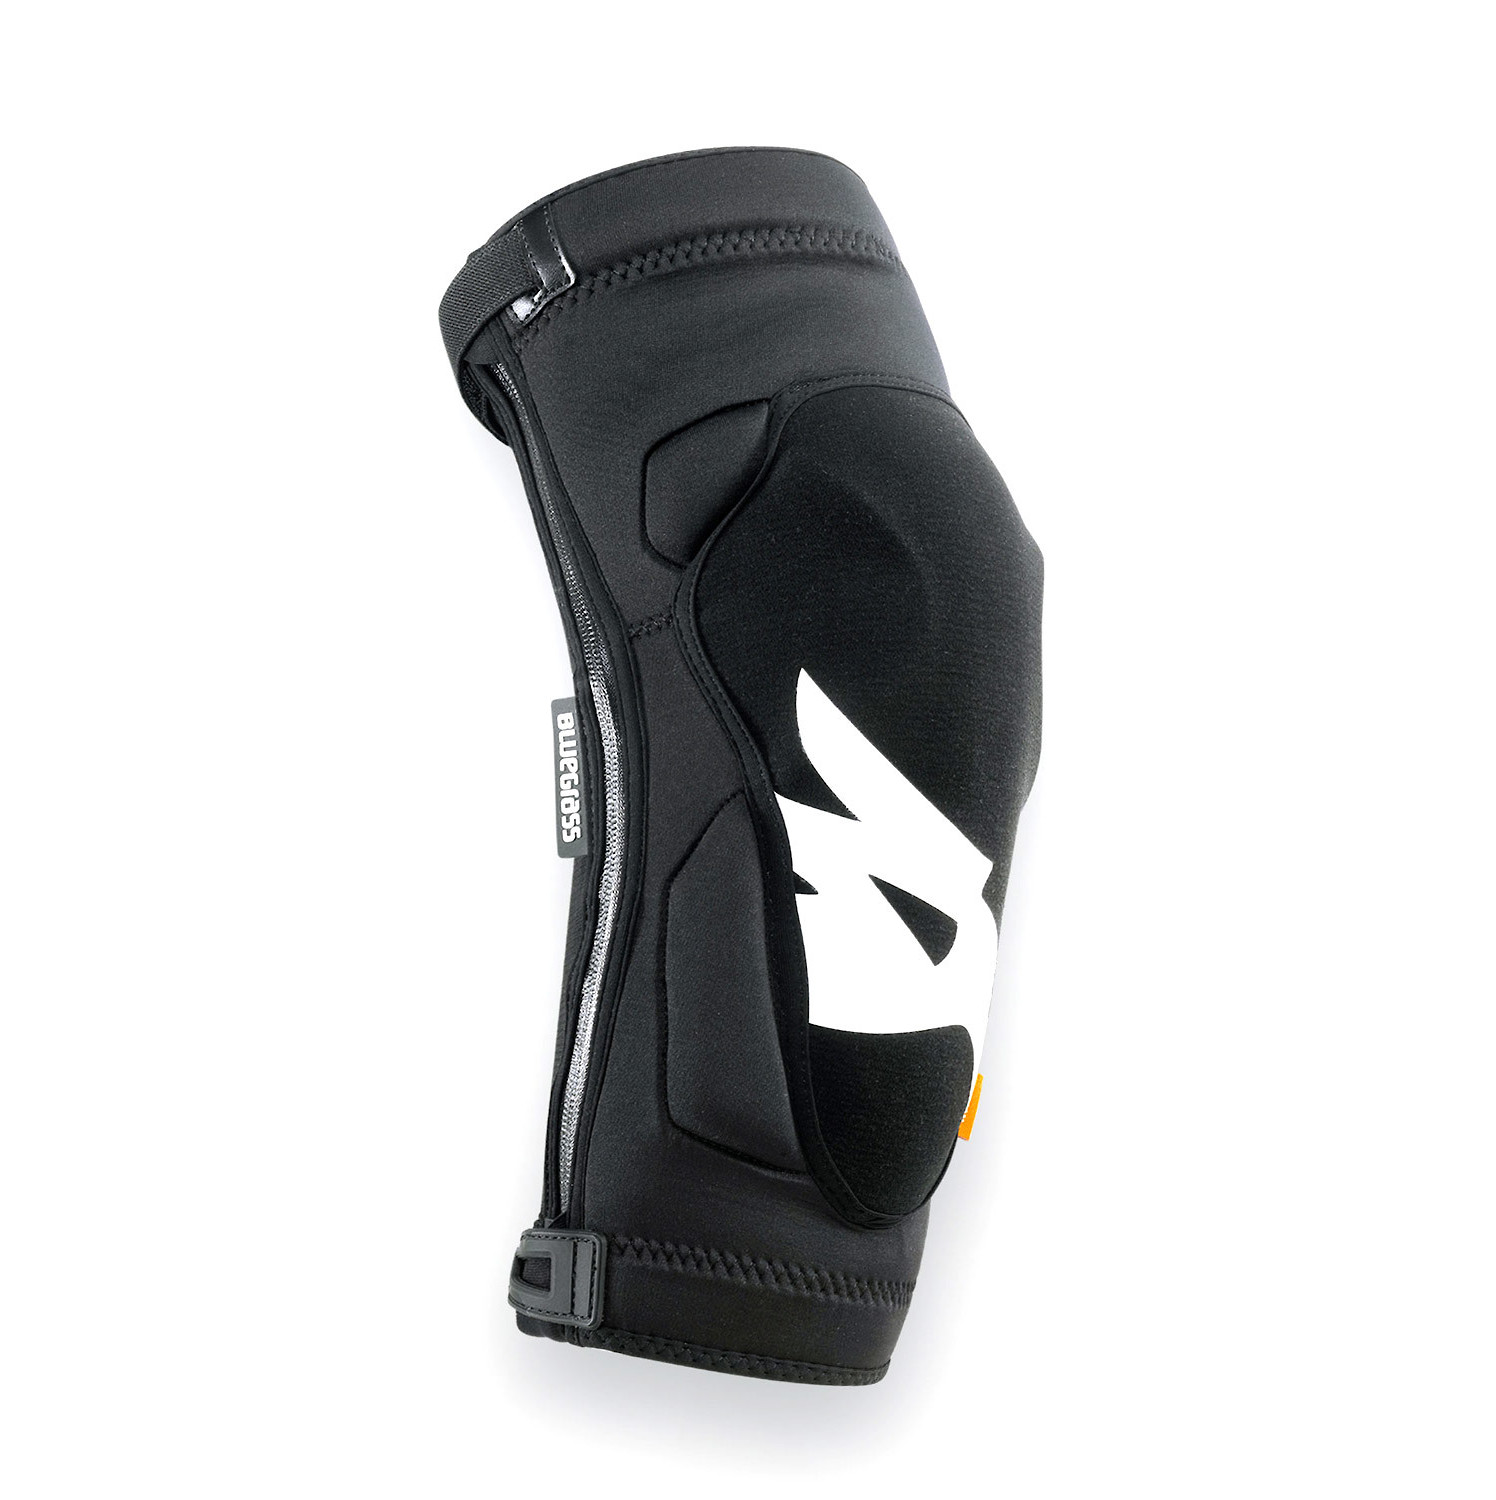 Bluegrass Solid D3O Knee Pad